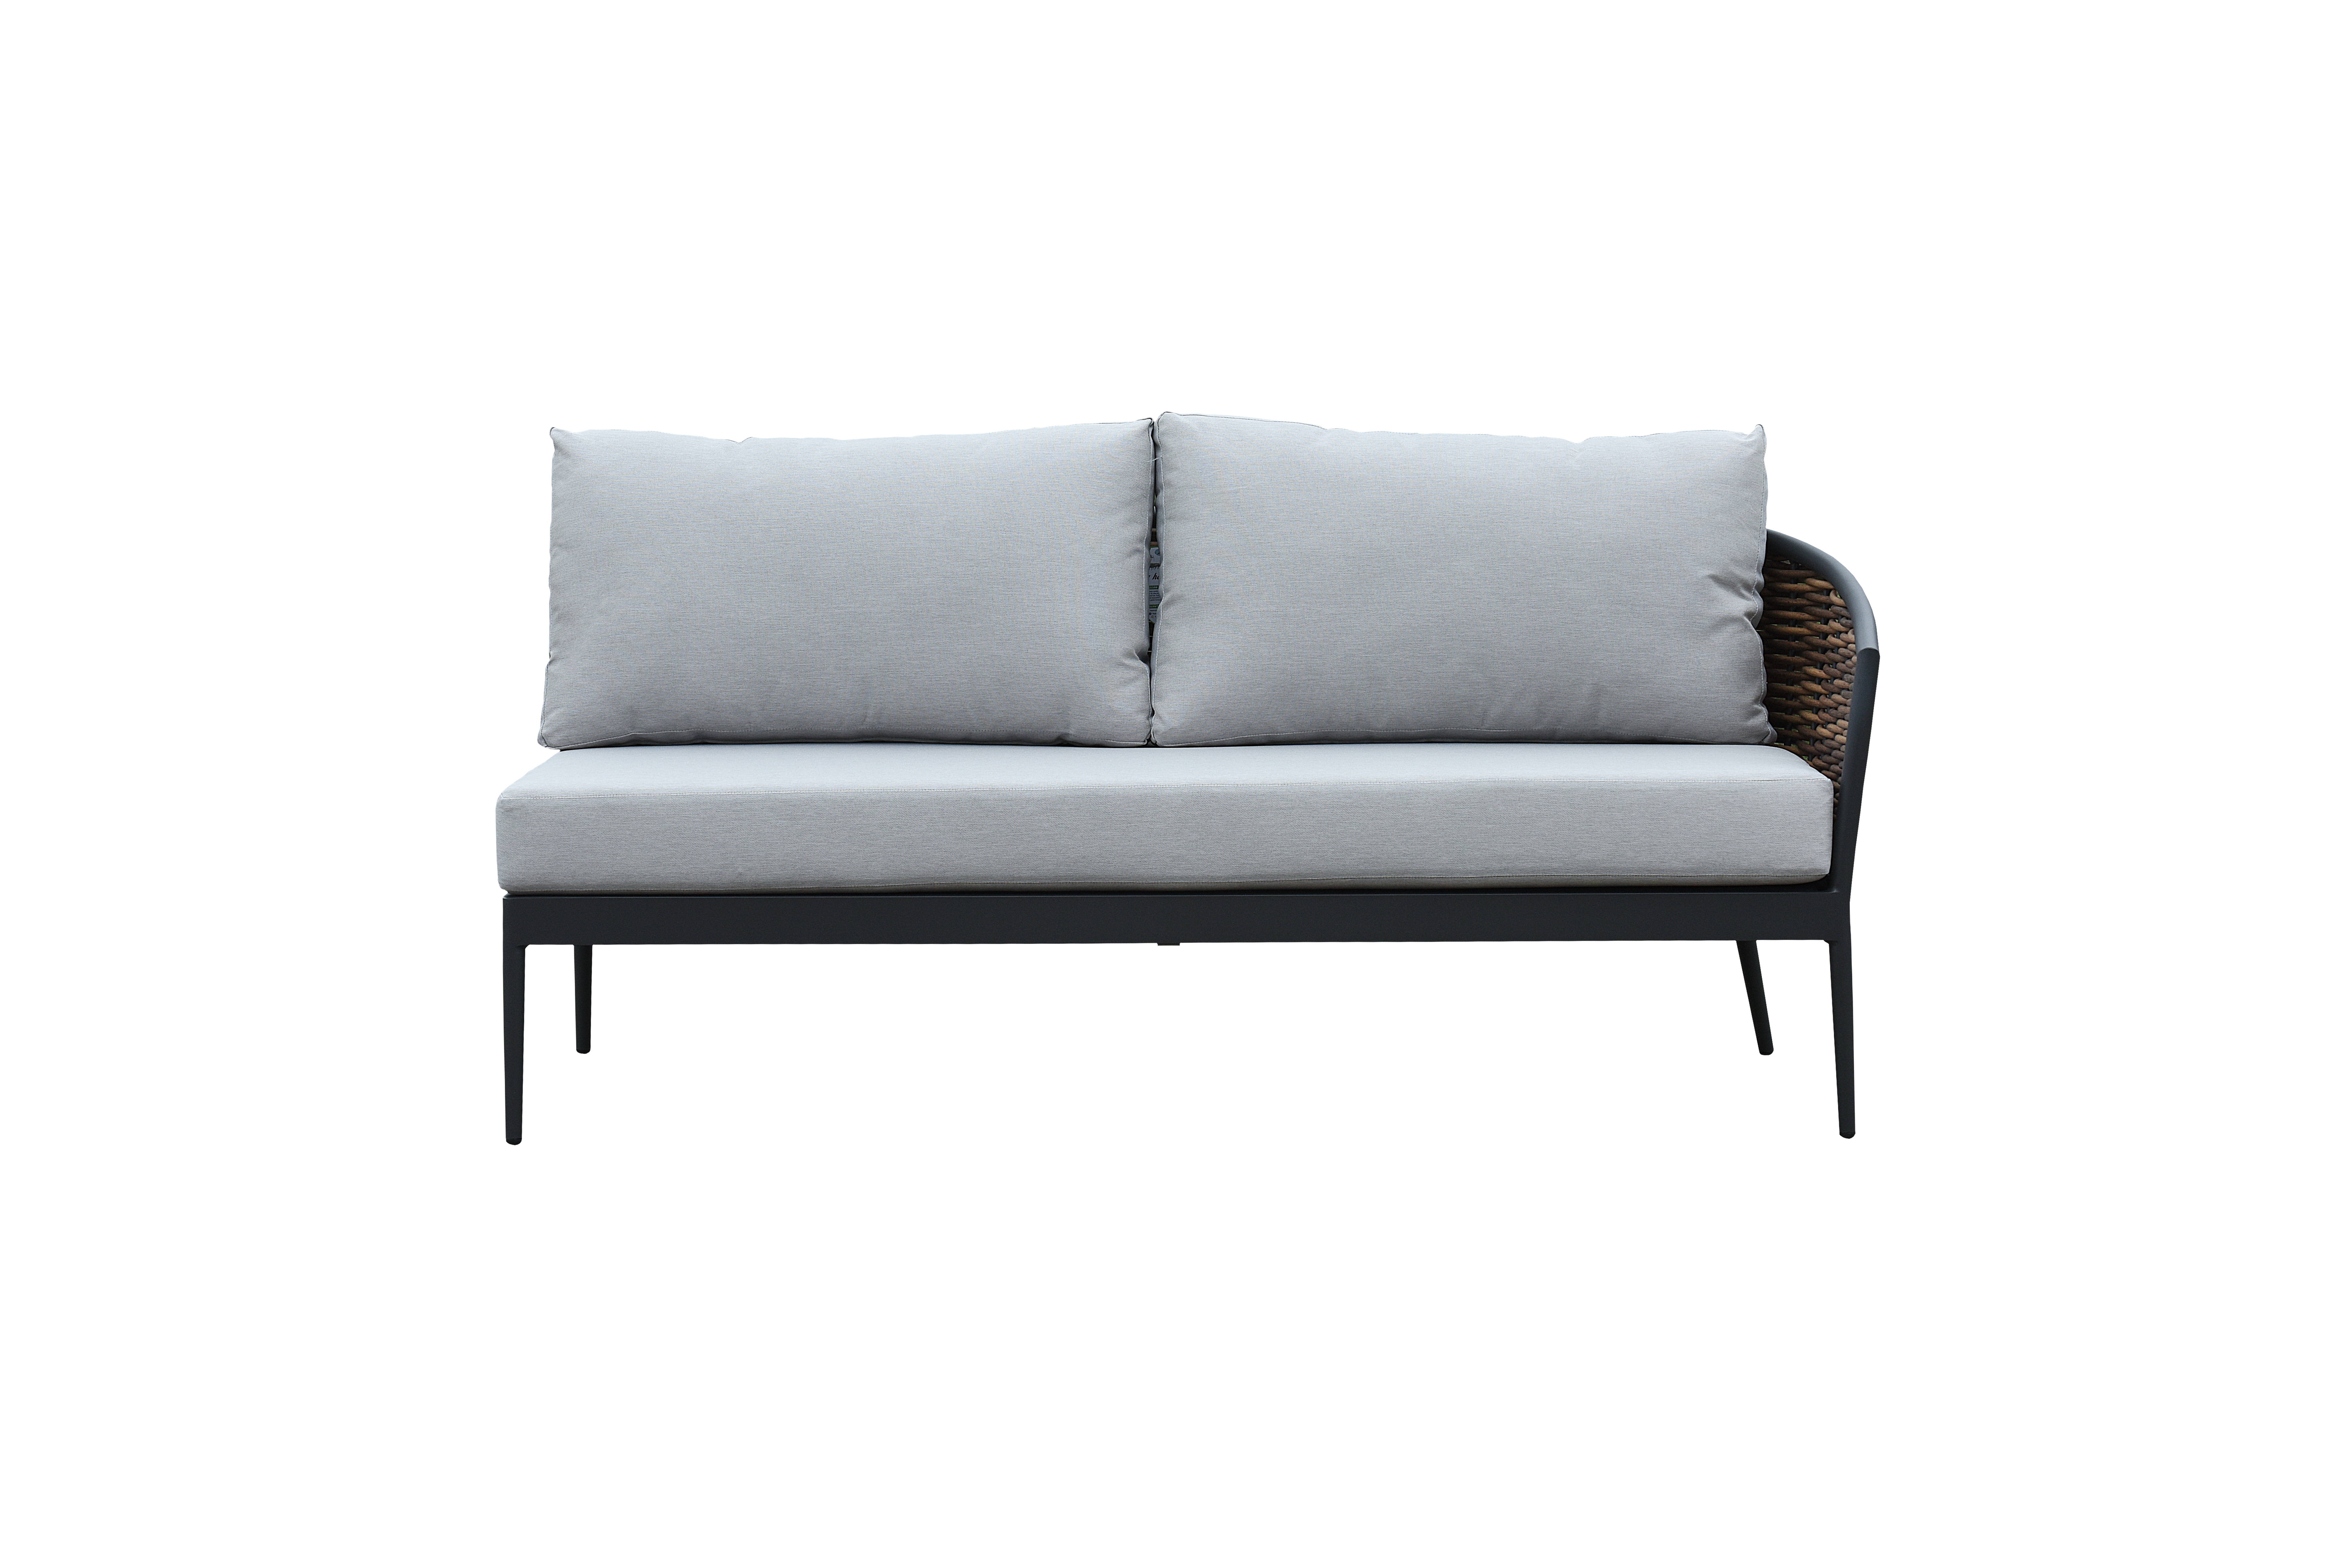 MUSES SECTIONAL SOFA